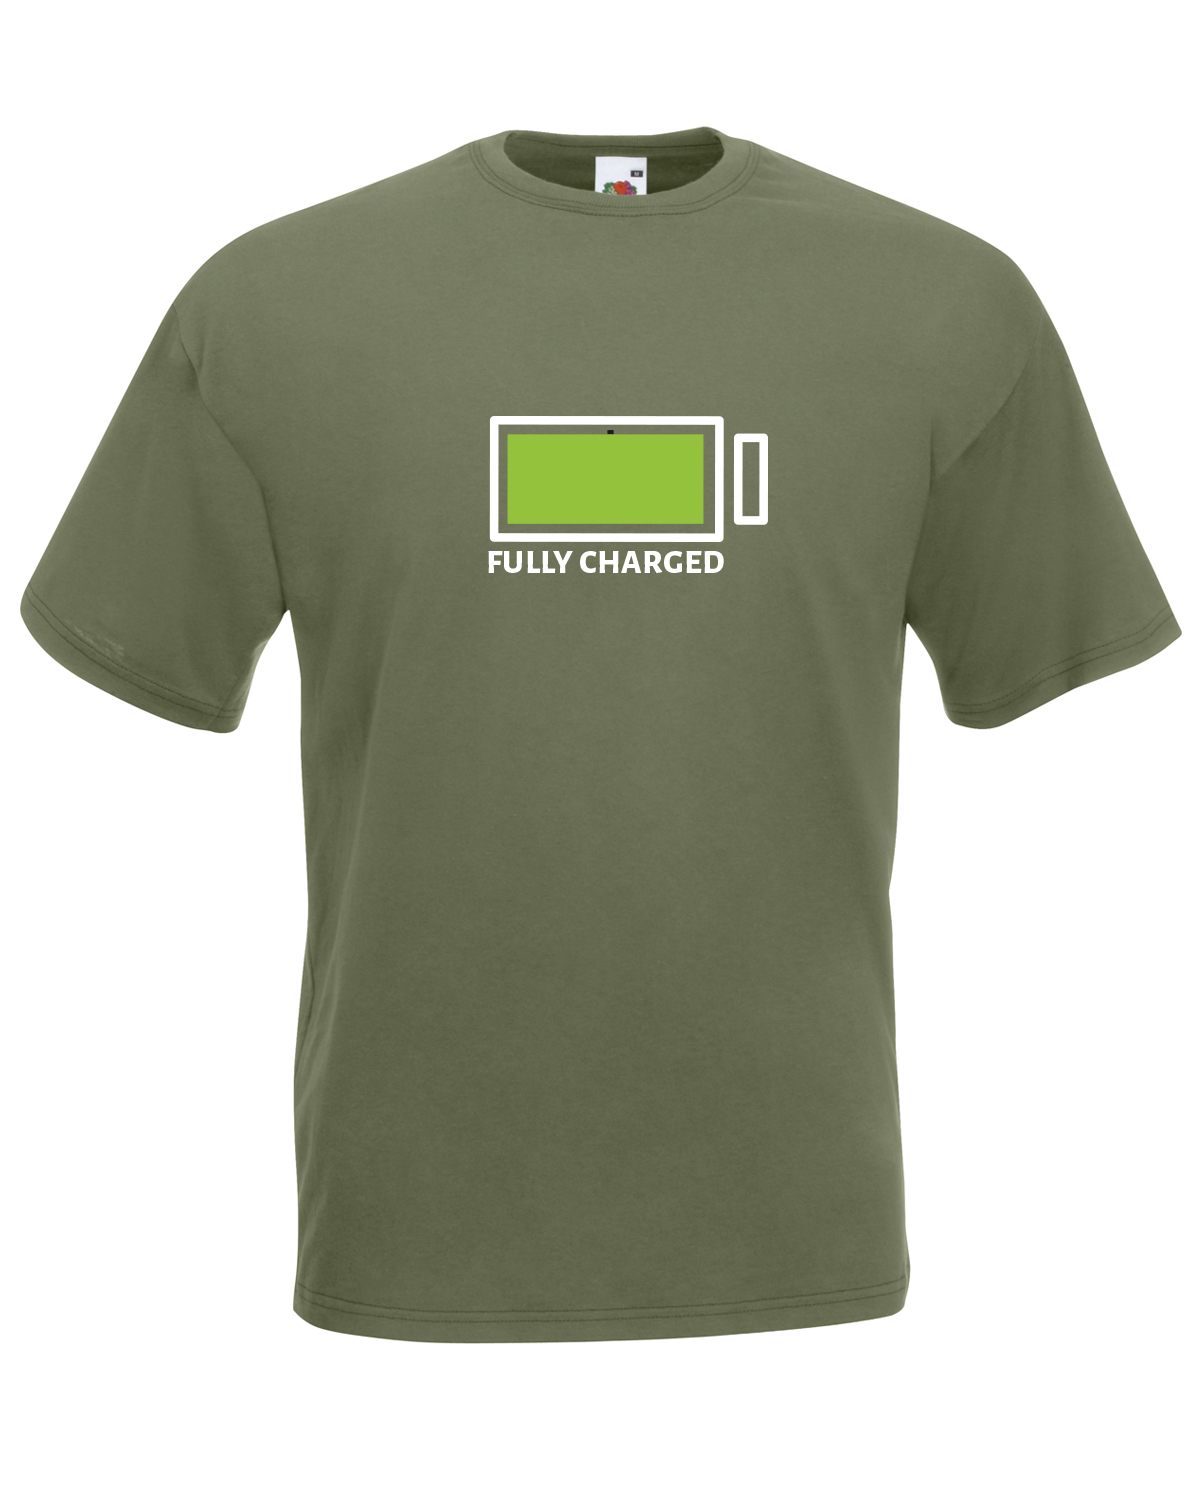 Fully charged battery graphic design quality t shirt tee for Graphic design t shirts uk